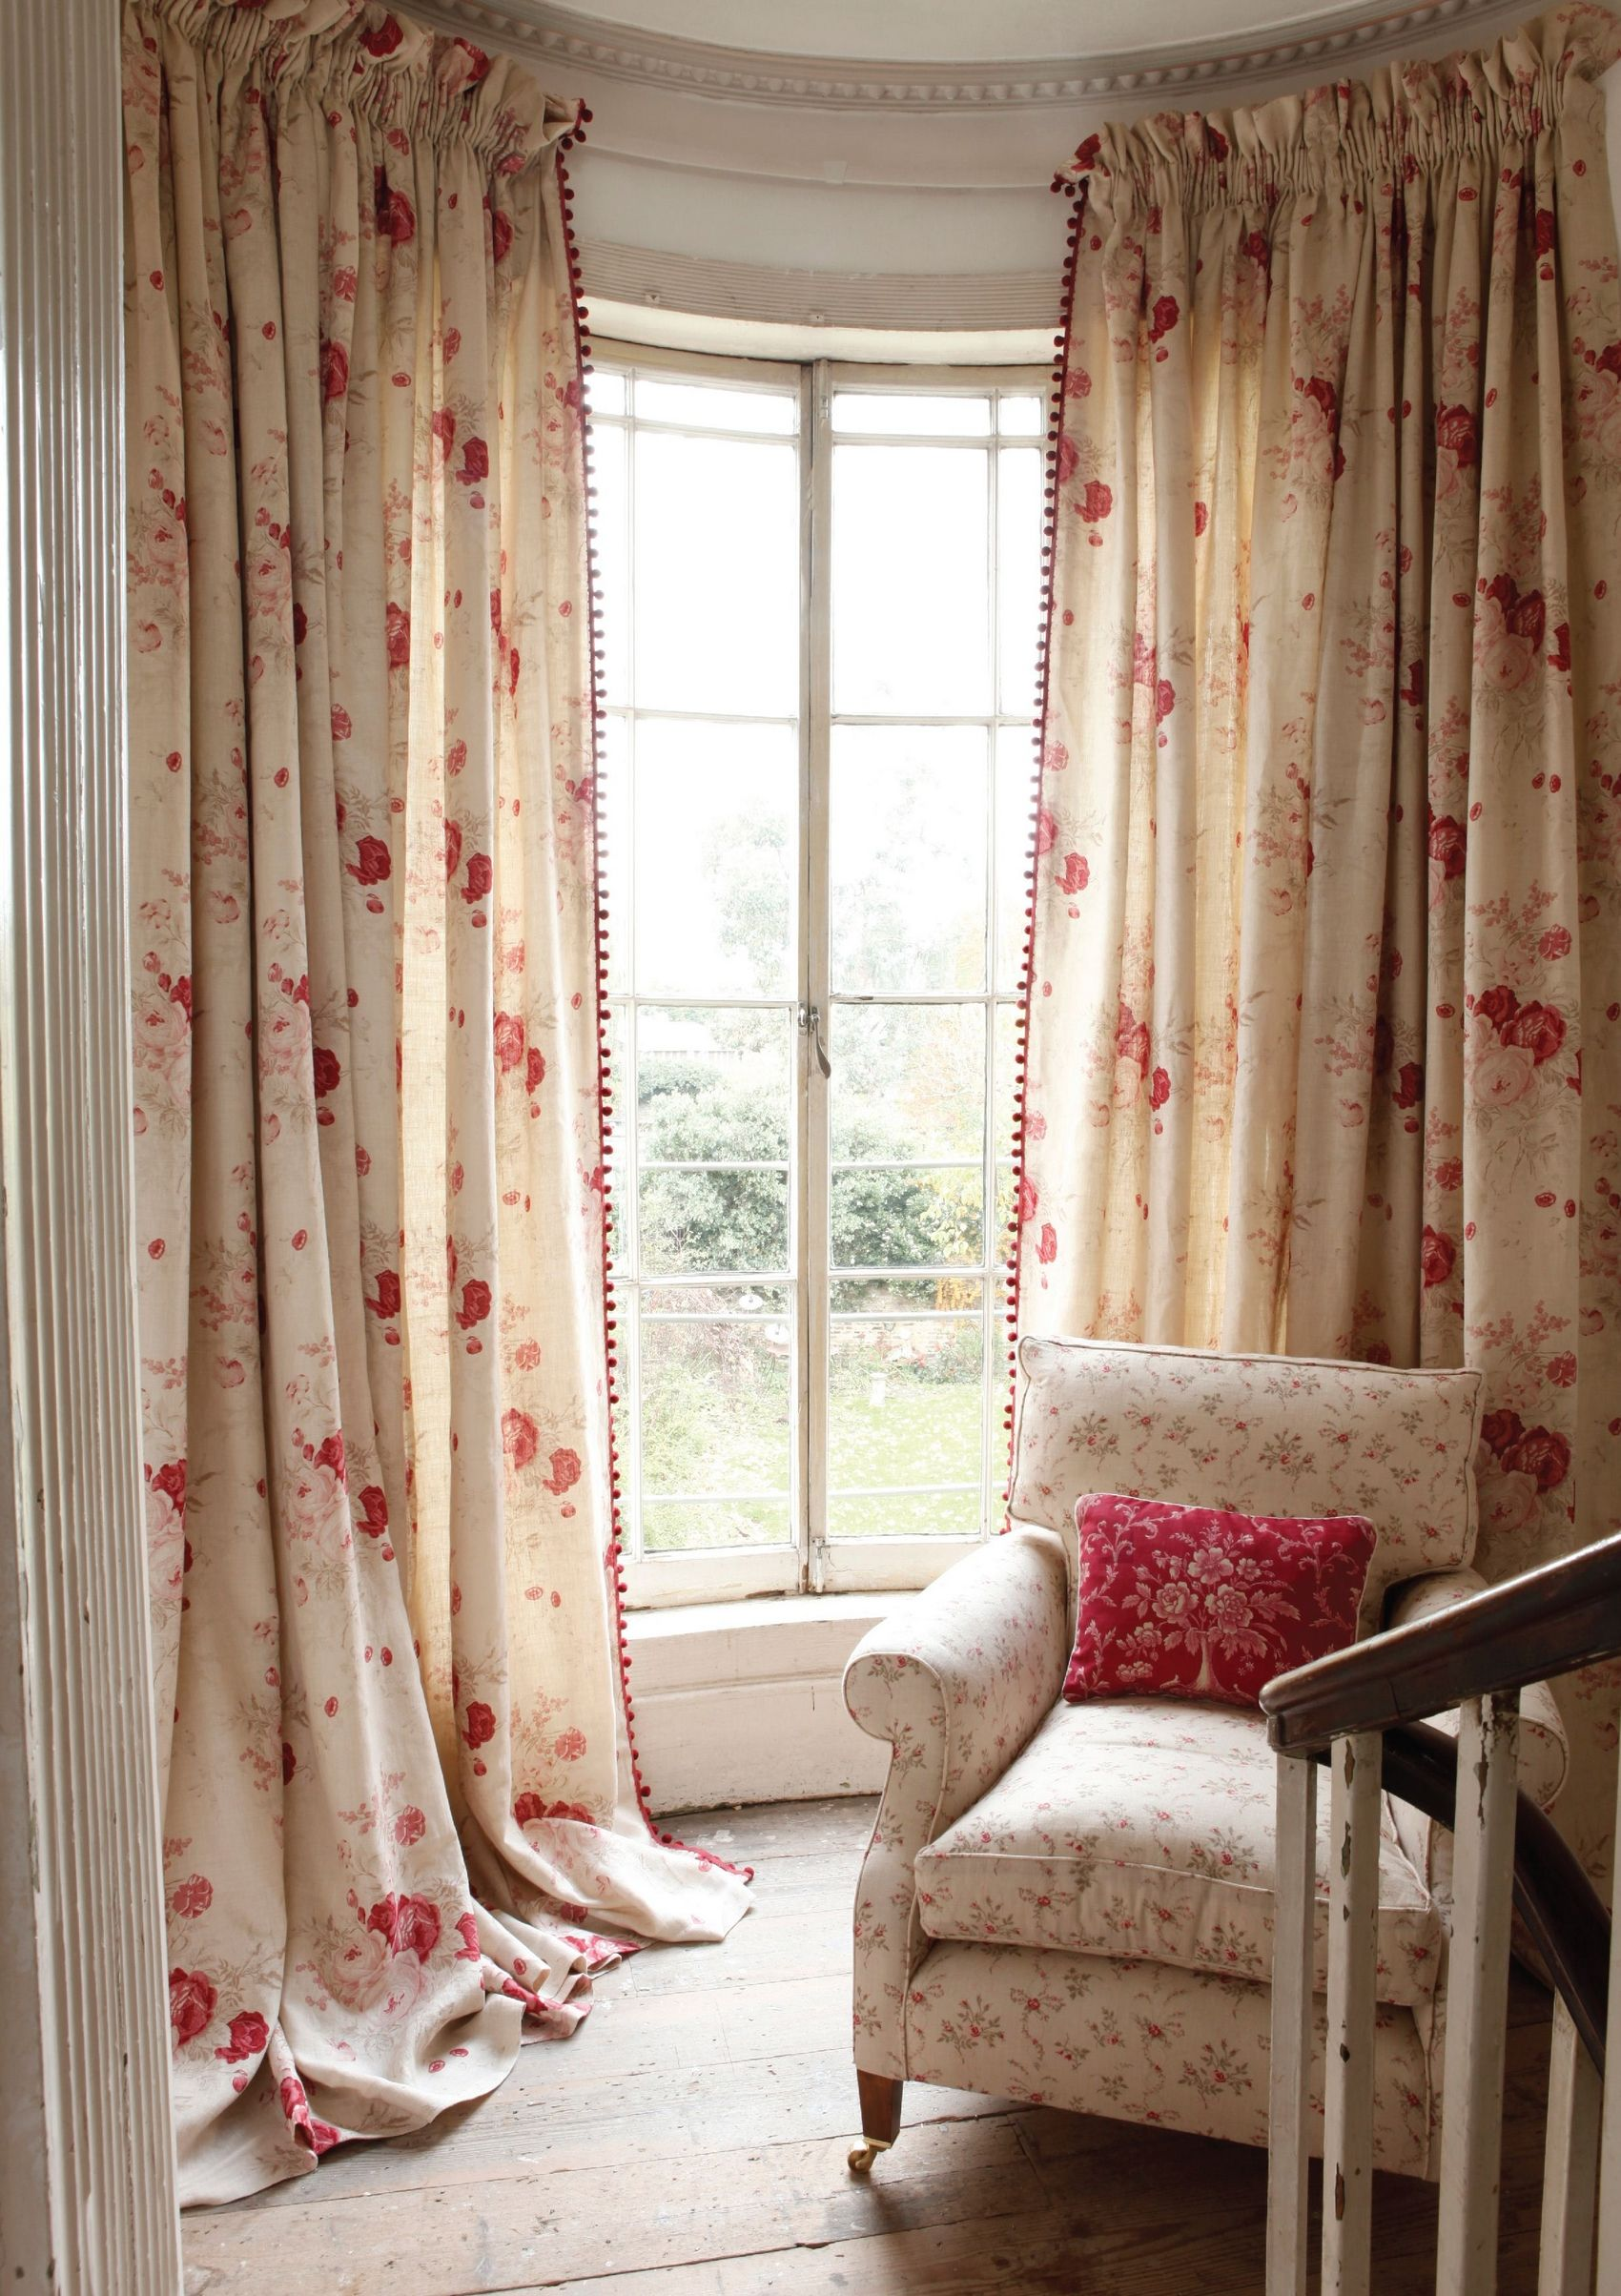 Kinds Of Vintage Floral Curtains - Bay window floral drapes waverly norfolk rose